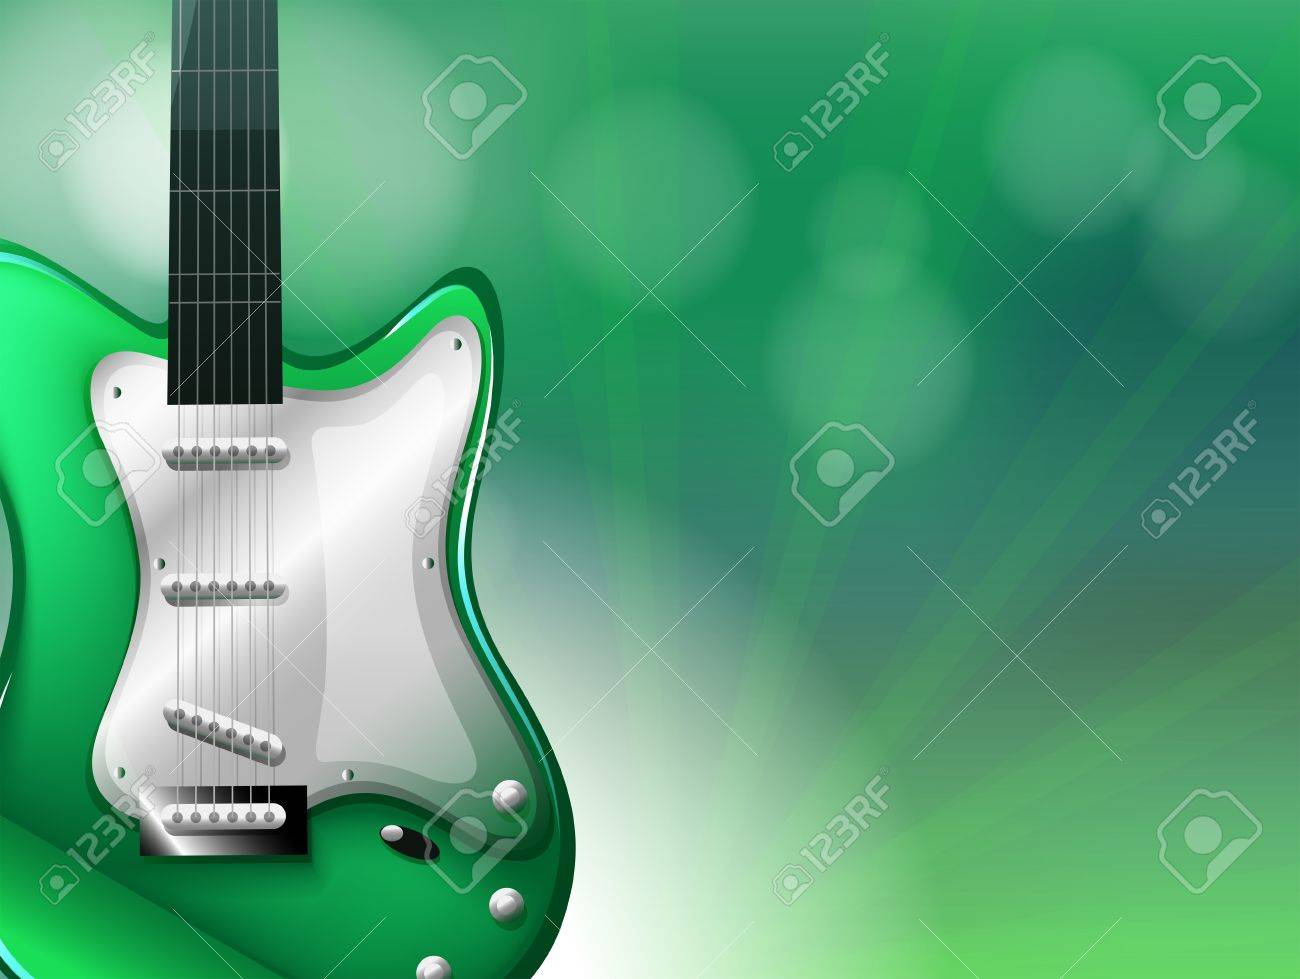 Illustration of a stationery with a guitar Stock Vector - 18859699